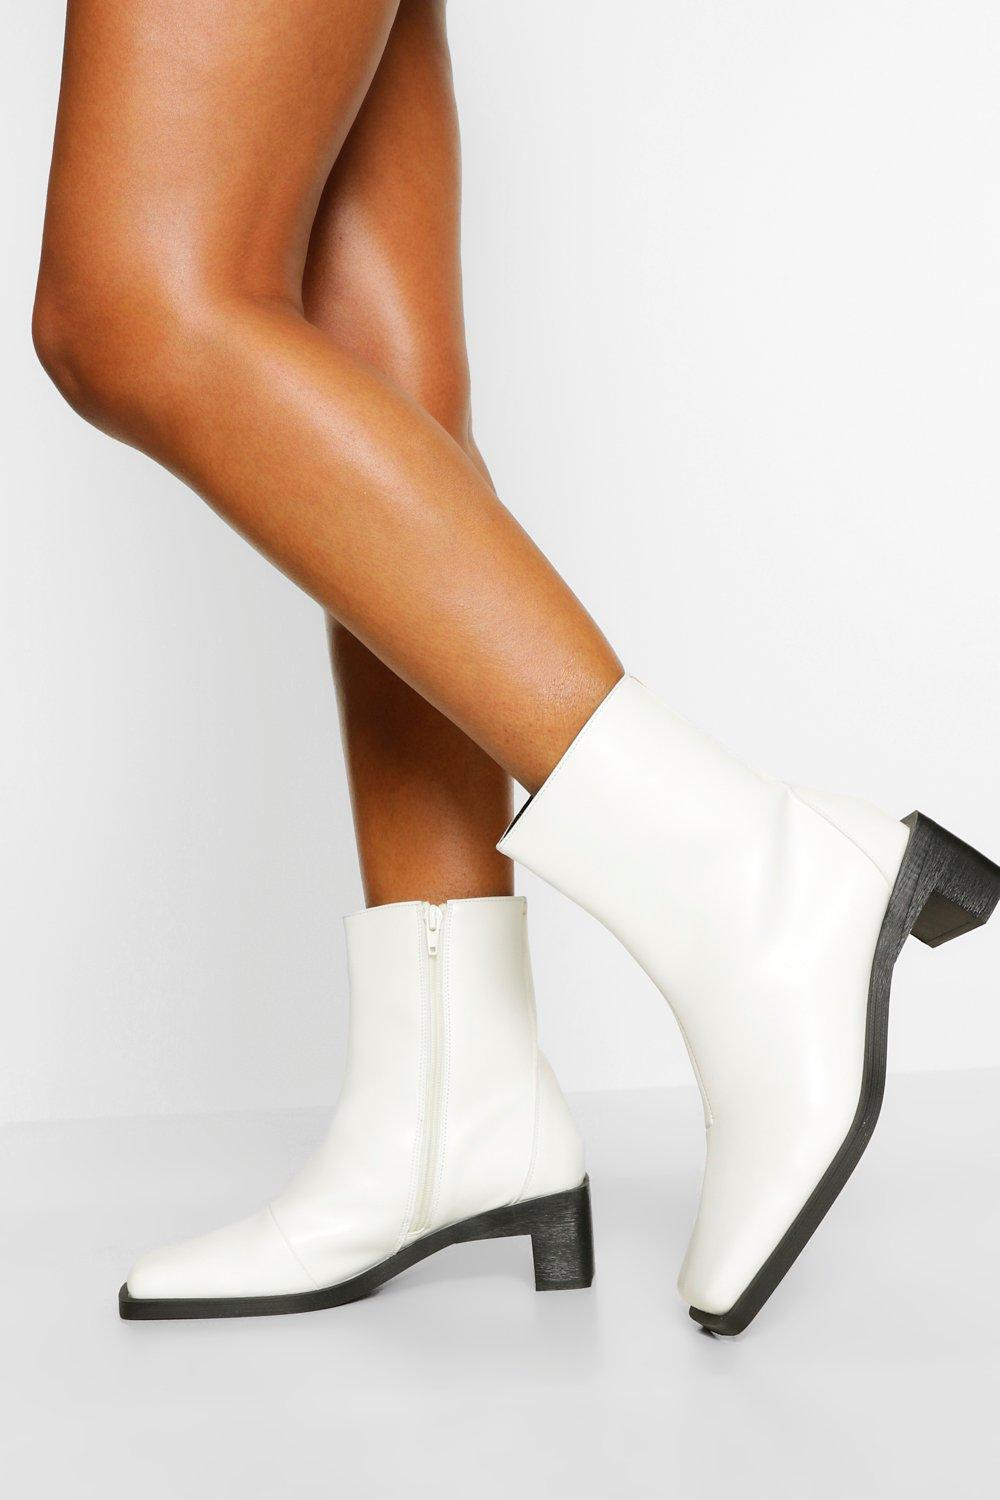 70s Shoes, Platforms, Boots, Heels | 1970s Shoes Womens Interest Low Heel Shoe Boot - White - 10 $45.00 AT vintagedancer.com